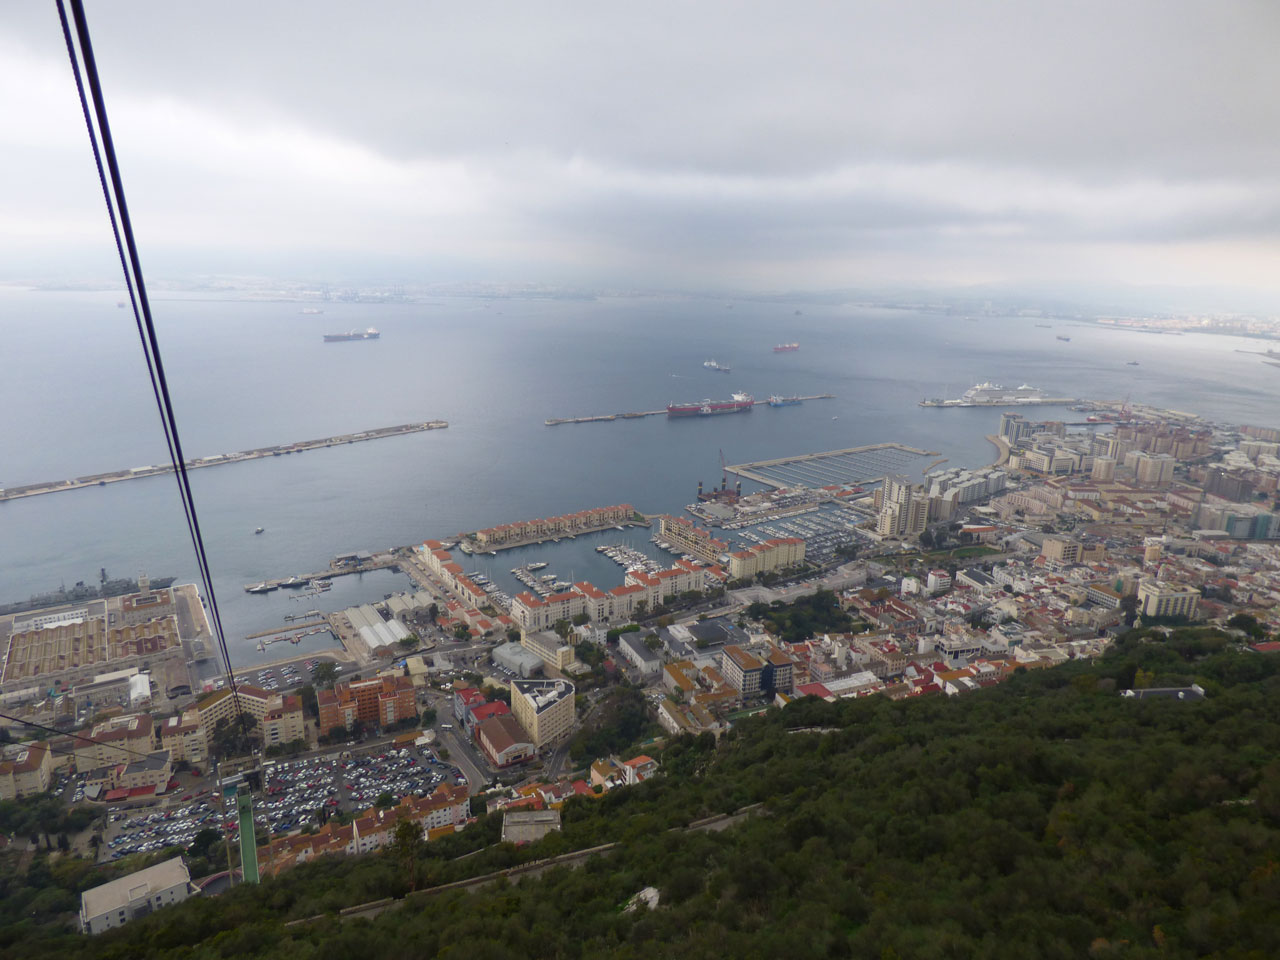 The view from the top of the Rock, Gibraltar